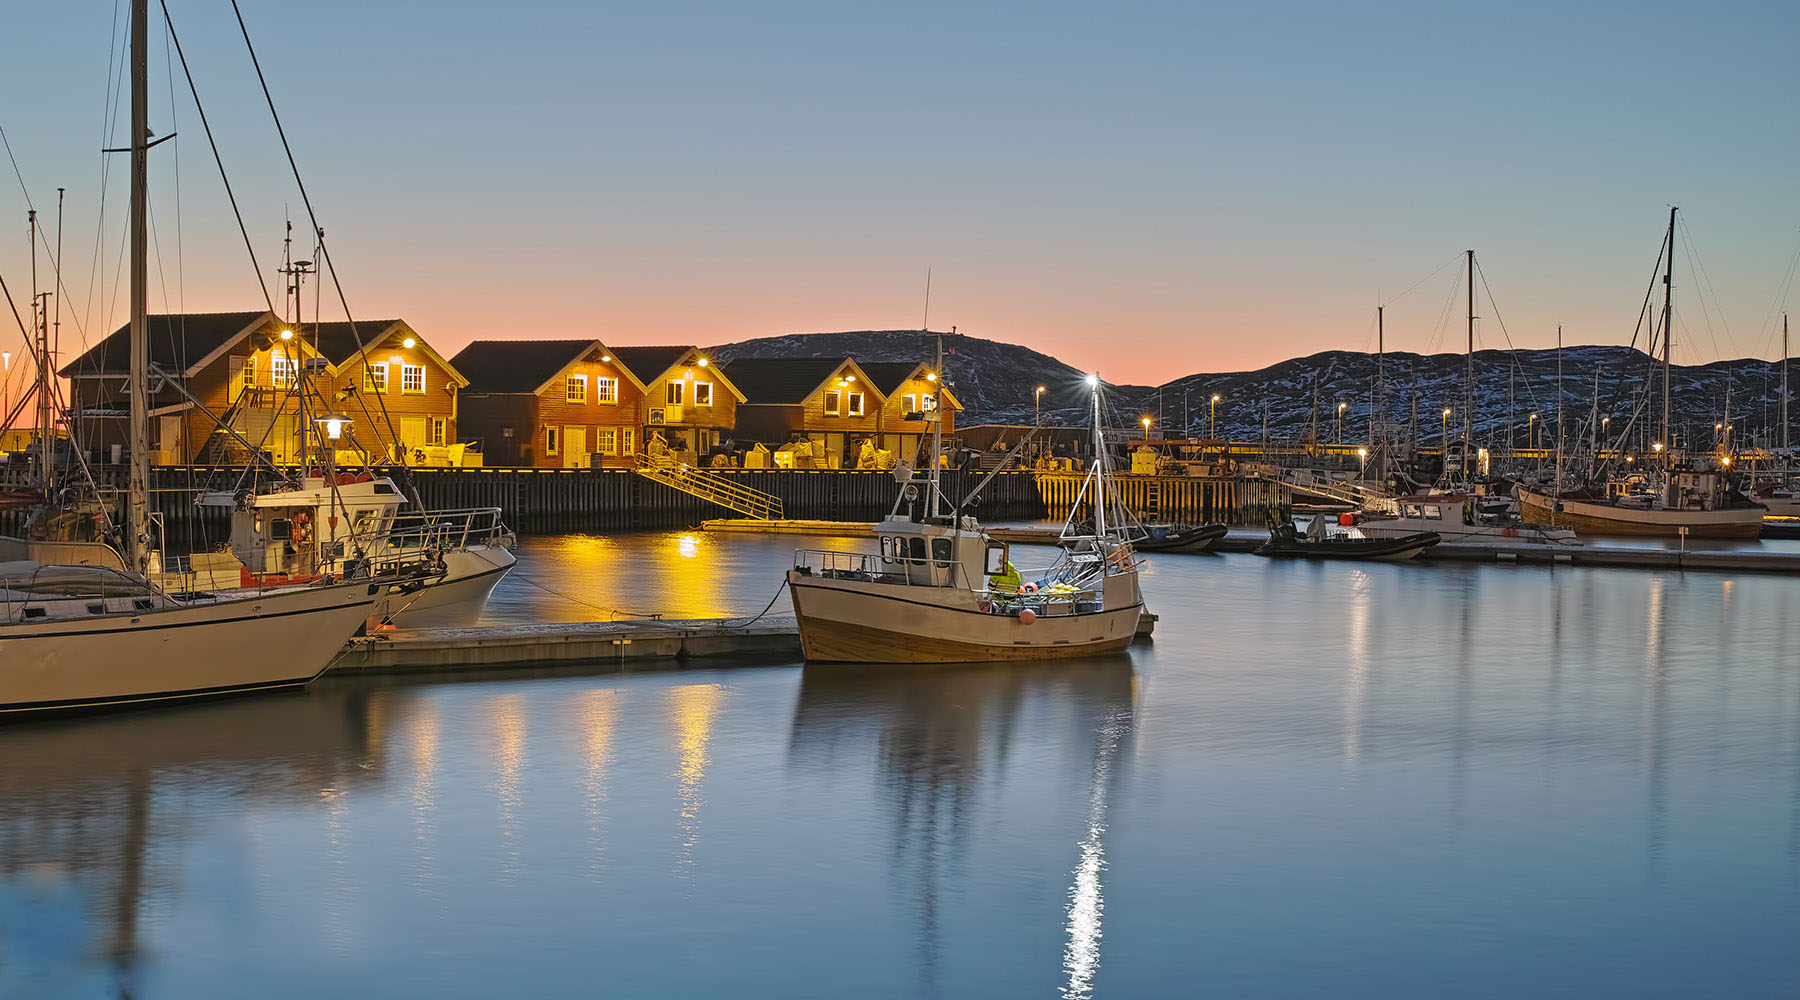 Small boats in the harbor of Bodo Norway at night